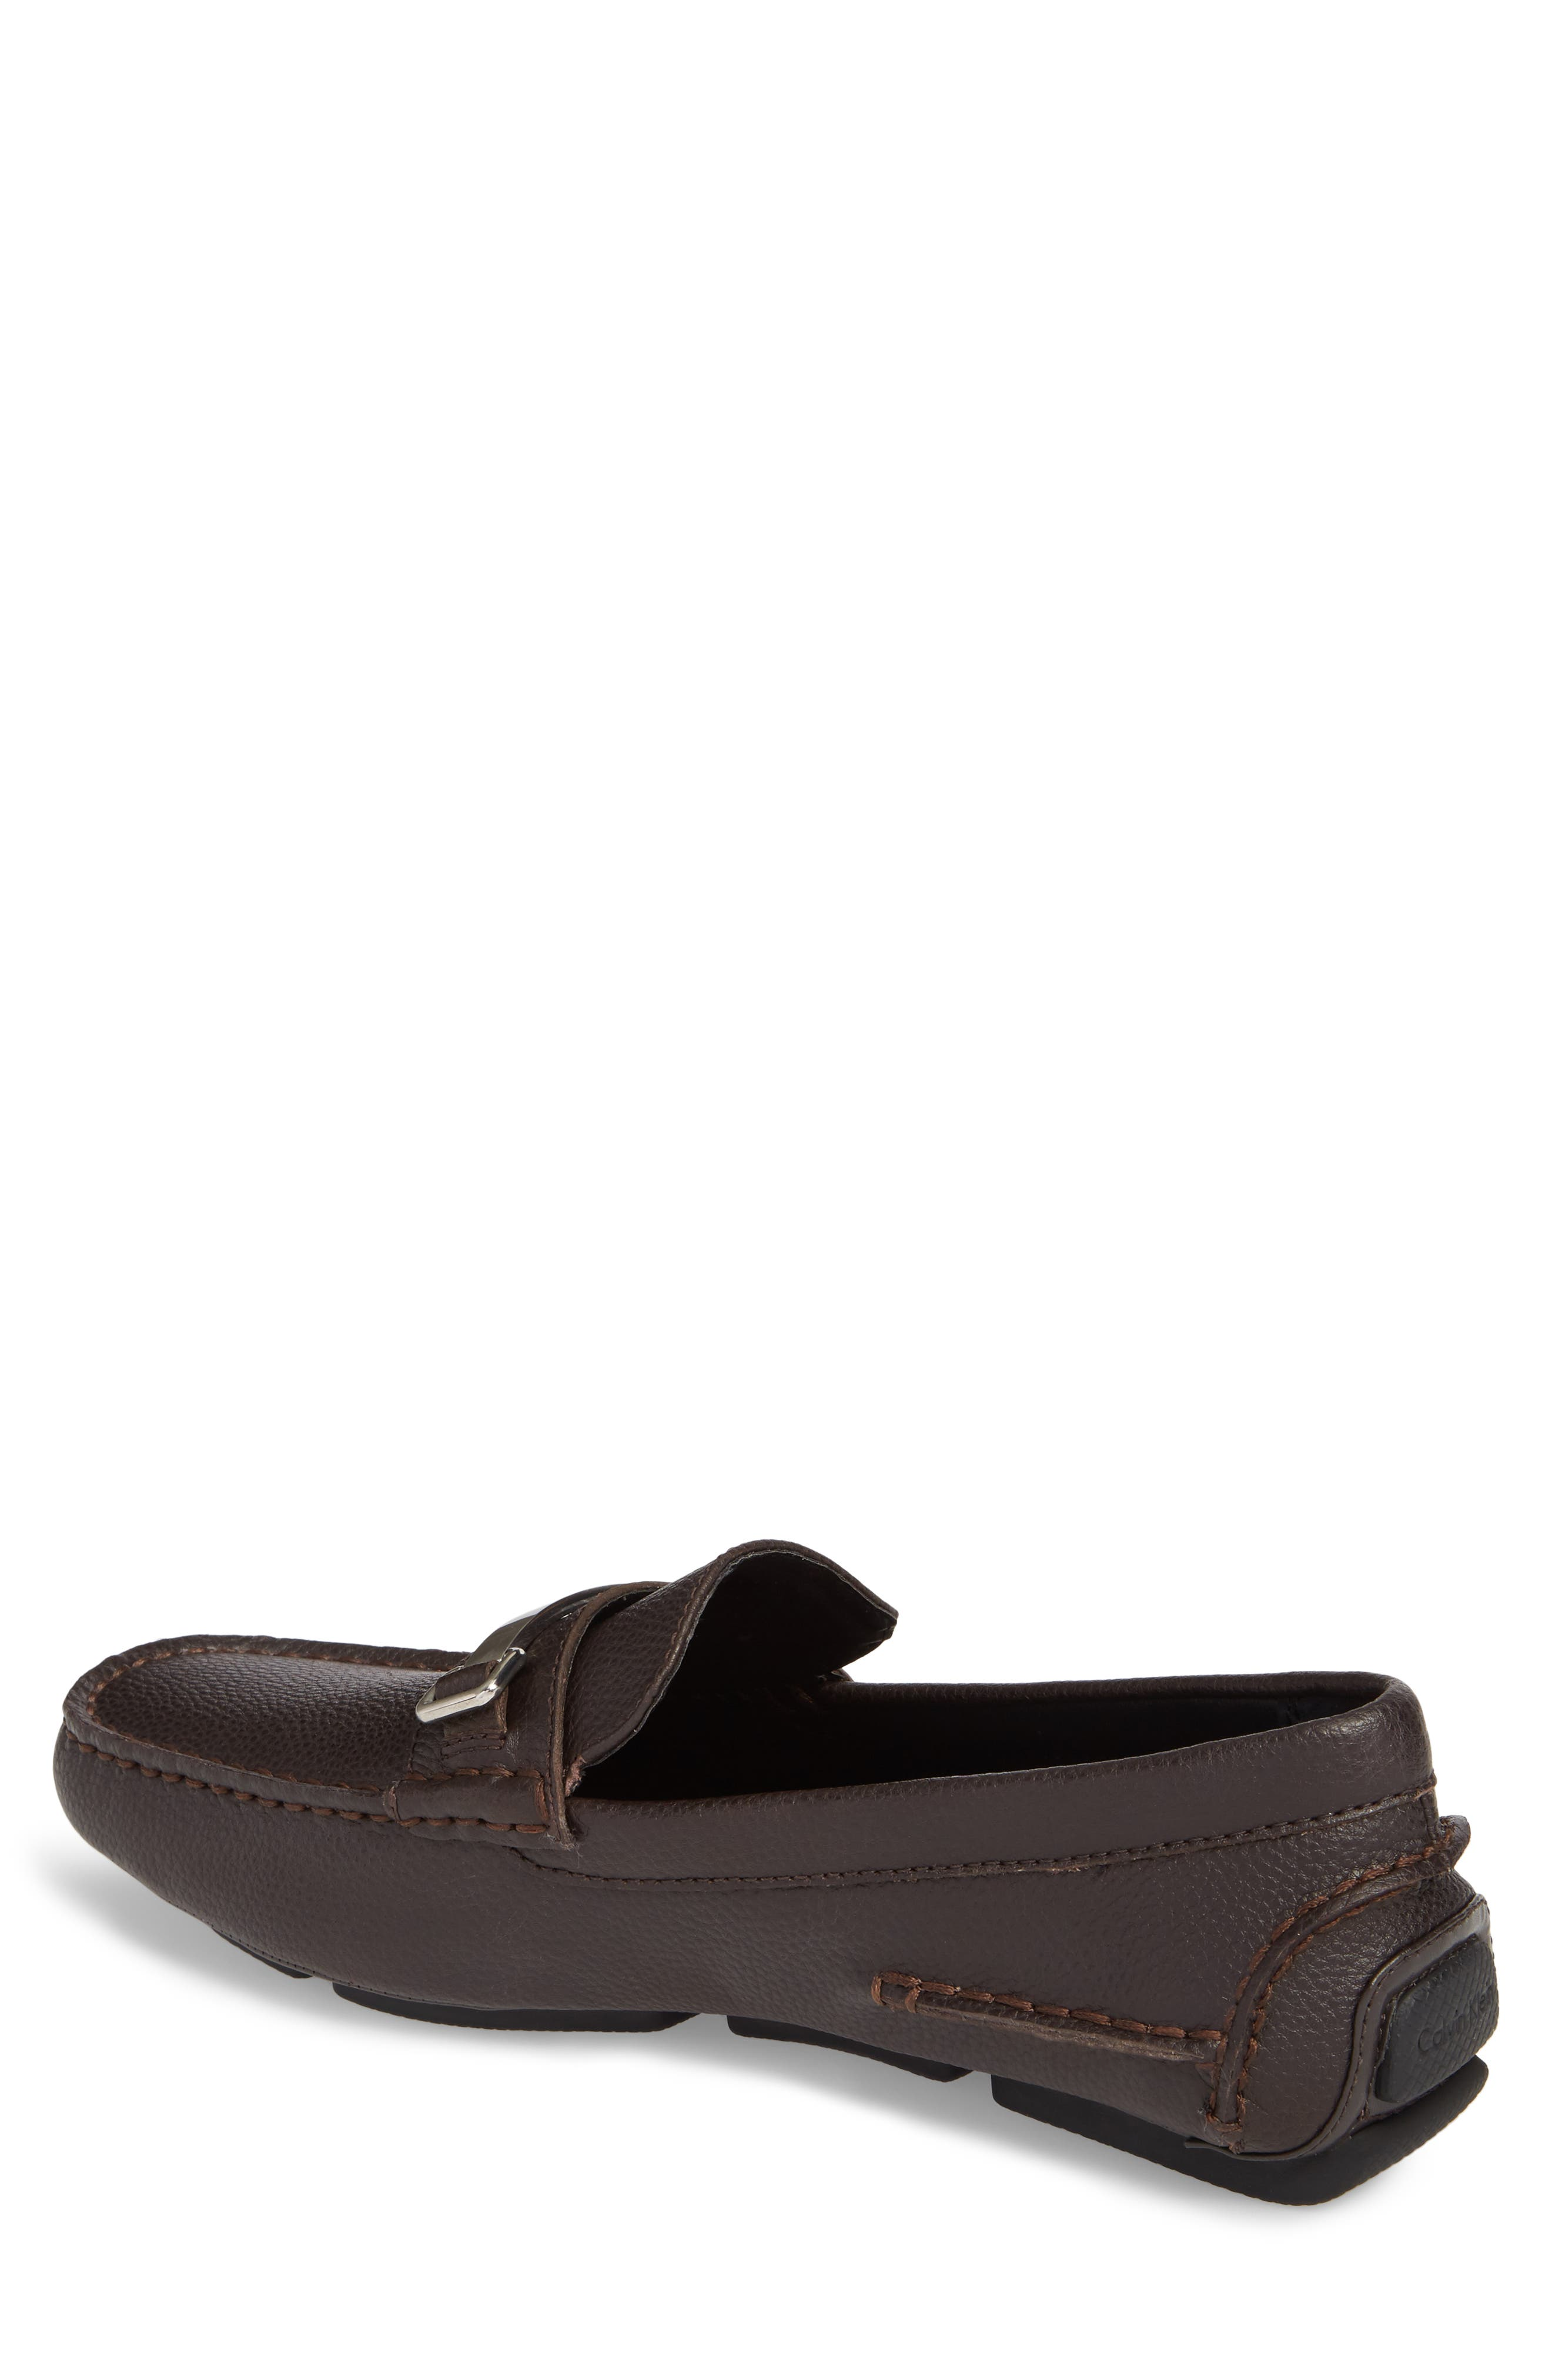 Mikos Driving Shoe,                             Alternate thumbnail 2, color,                             Dark Brown Leather